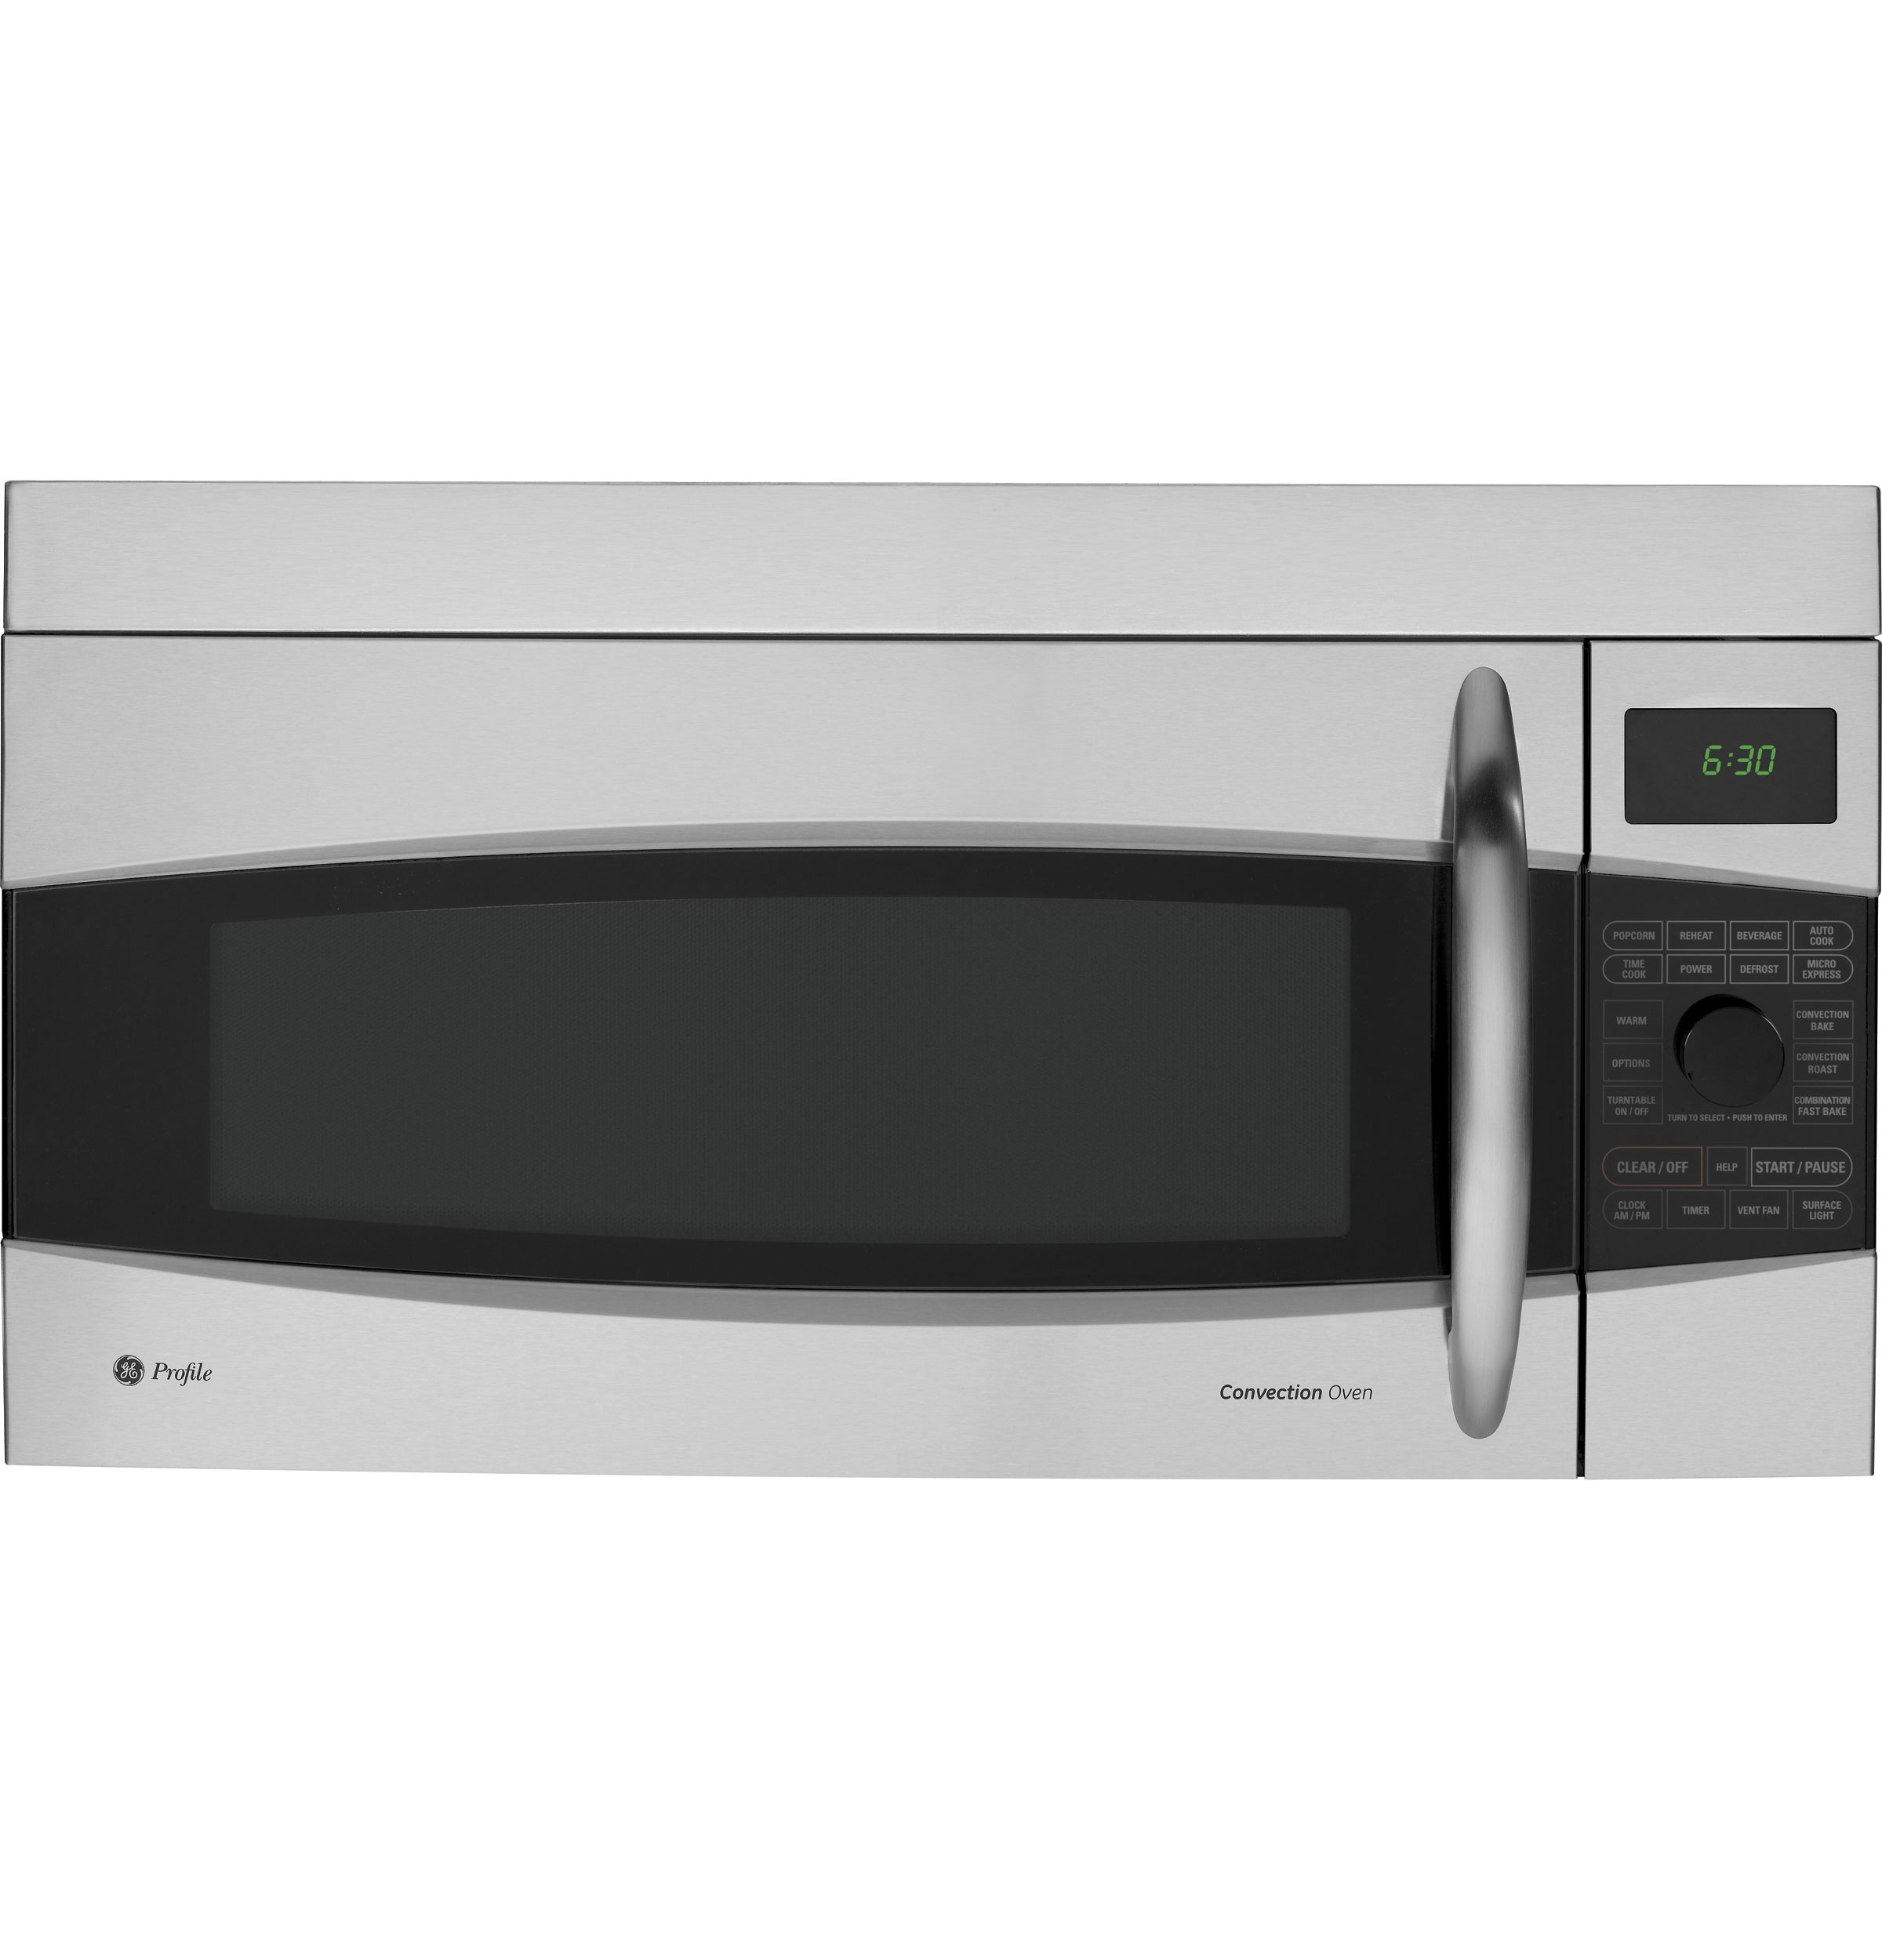 Size Of Microwave Oven Over The Range: GE Profile™ 1.7 Cu. Ft. Convection Over-the-Range